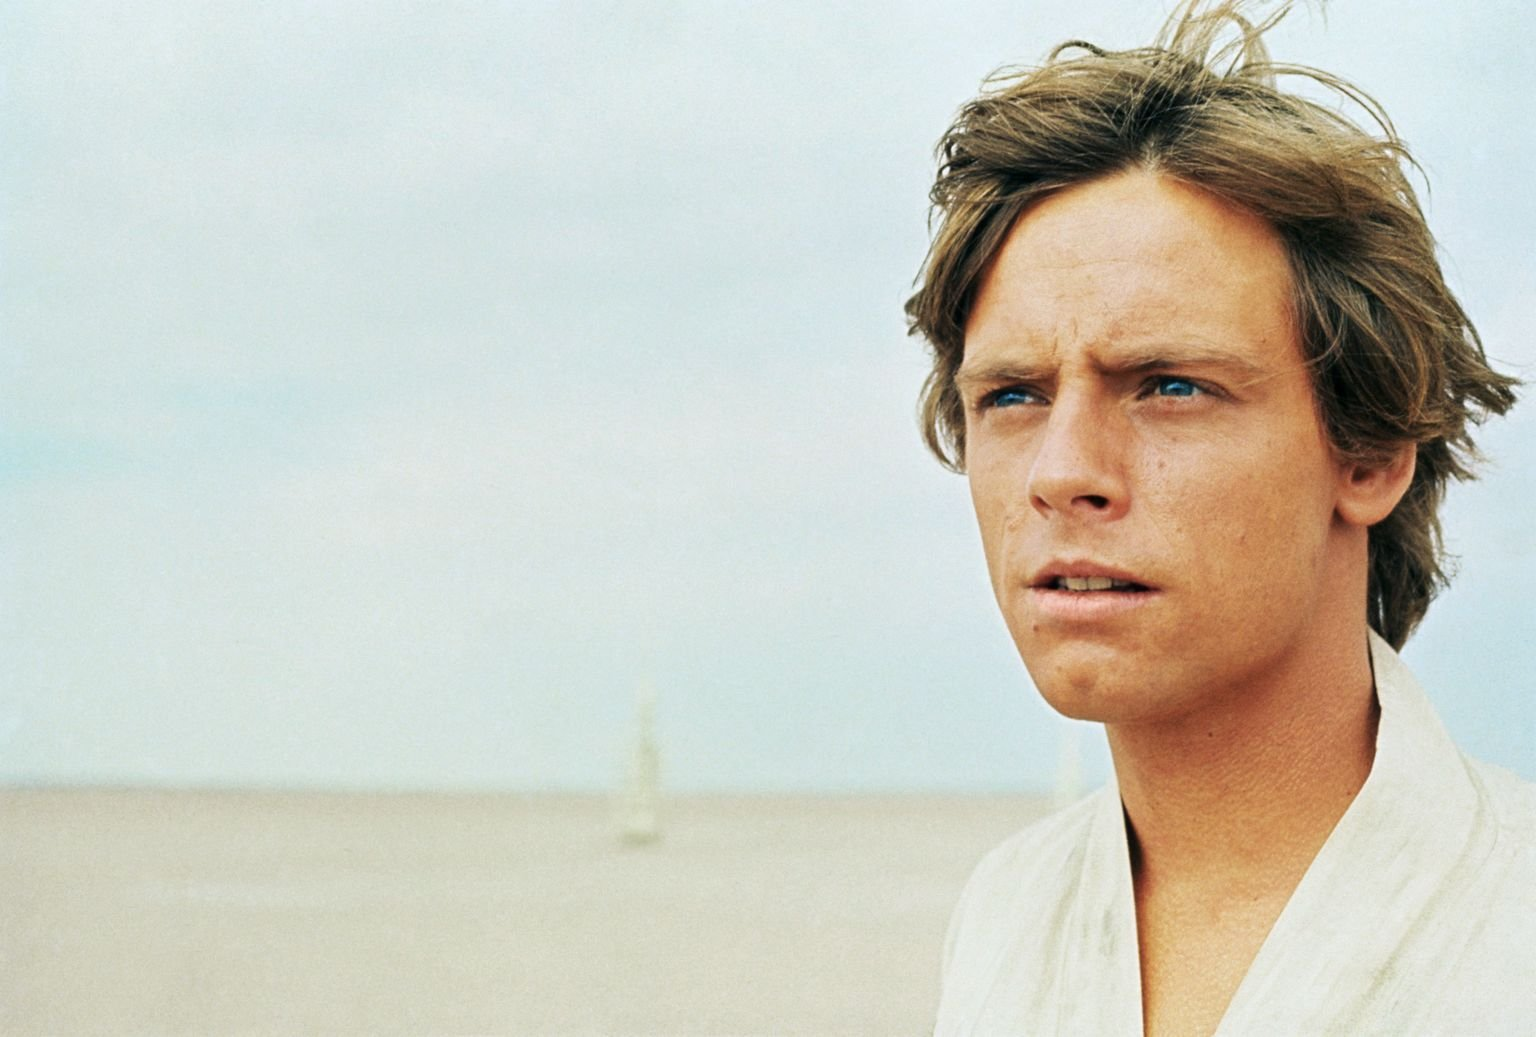 Lunch with Luke Skywalker? charitybuzz announces its holiday auction